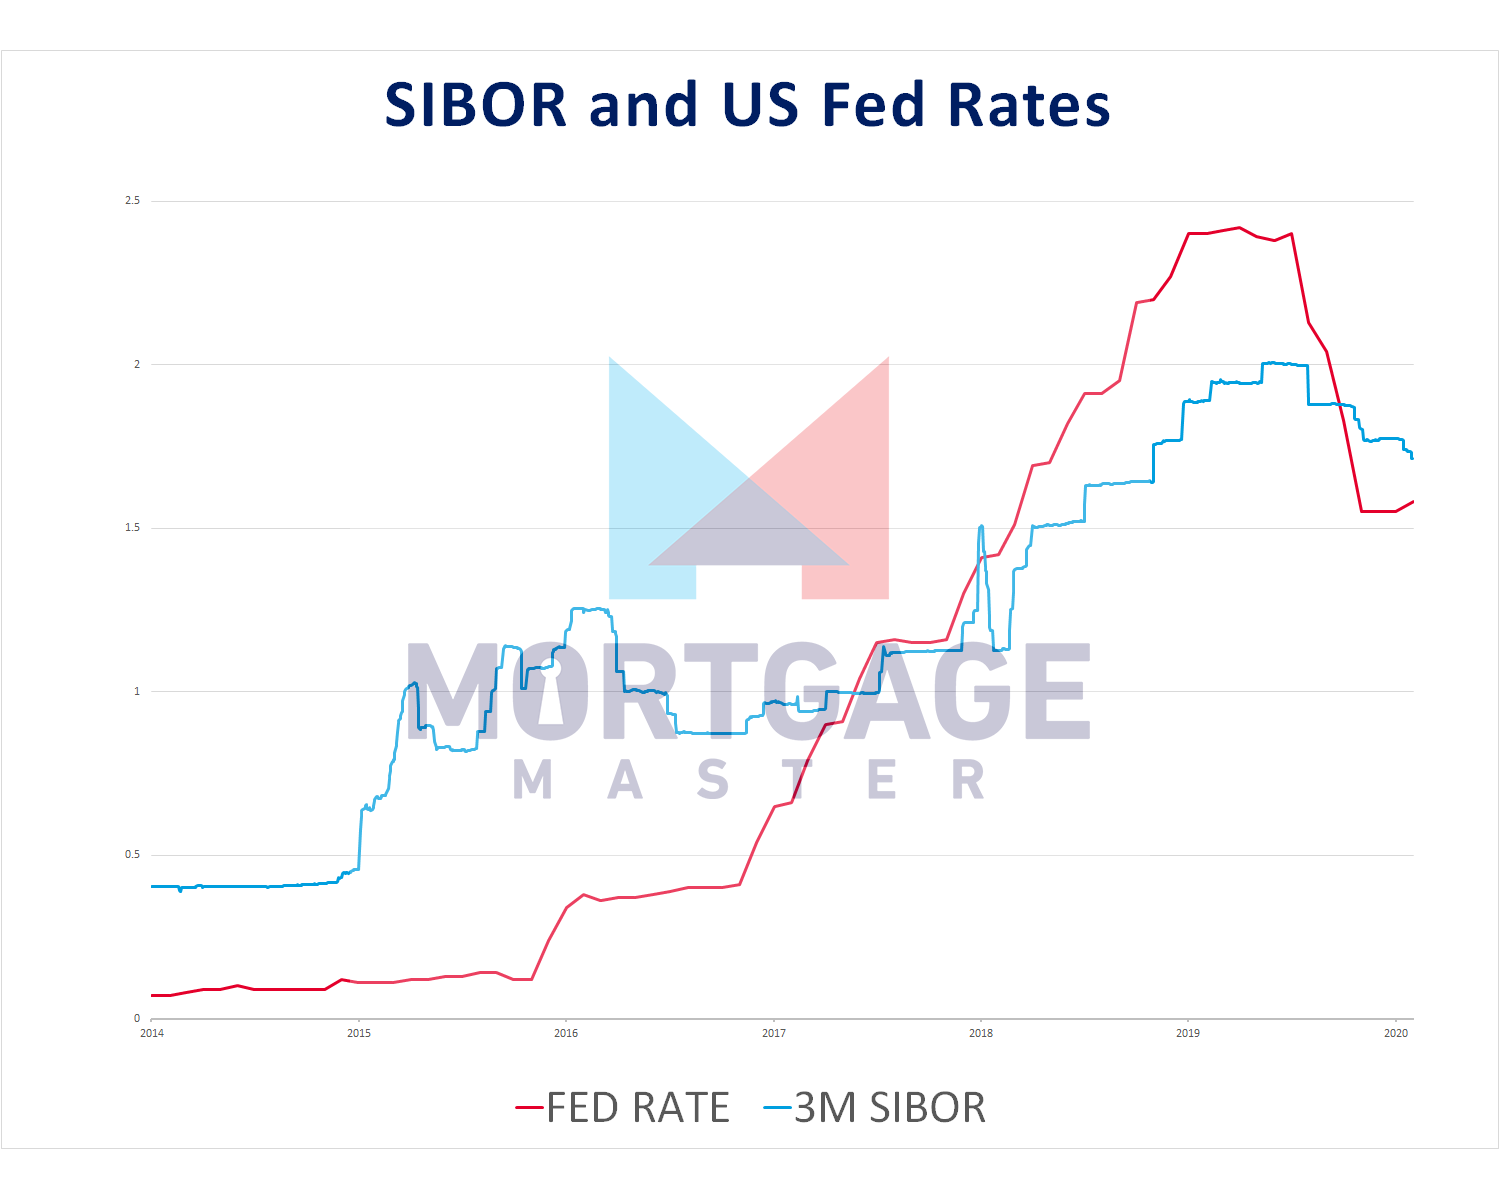 SIBOR and US Fed Rates